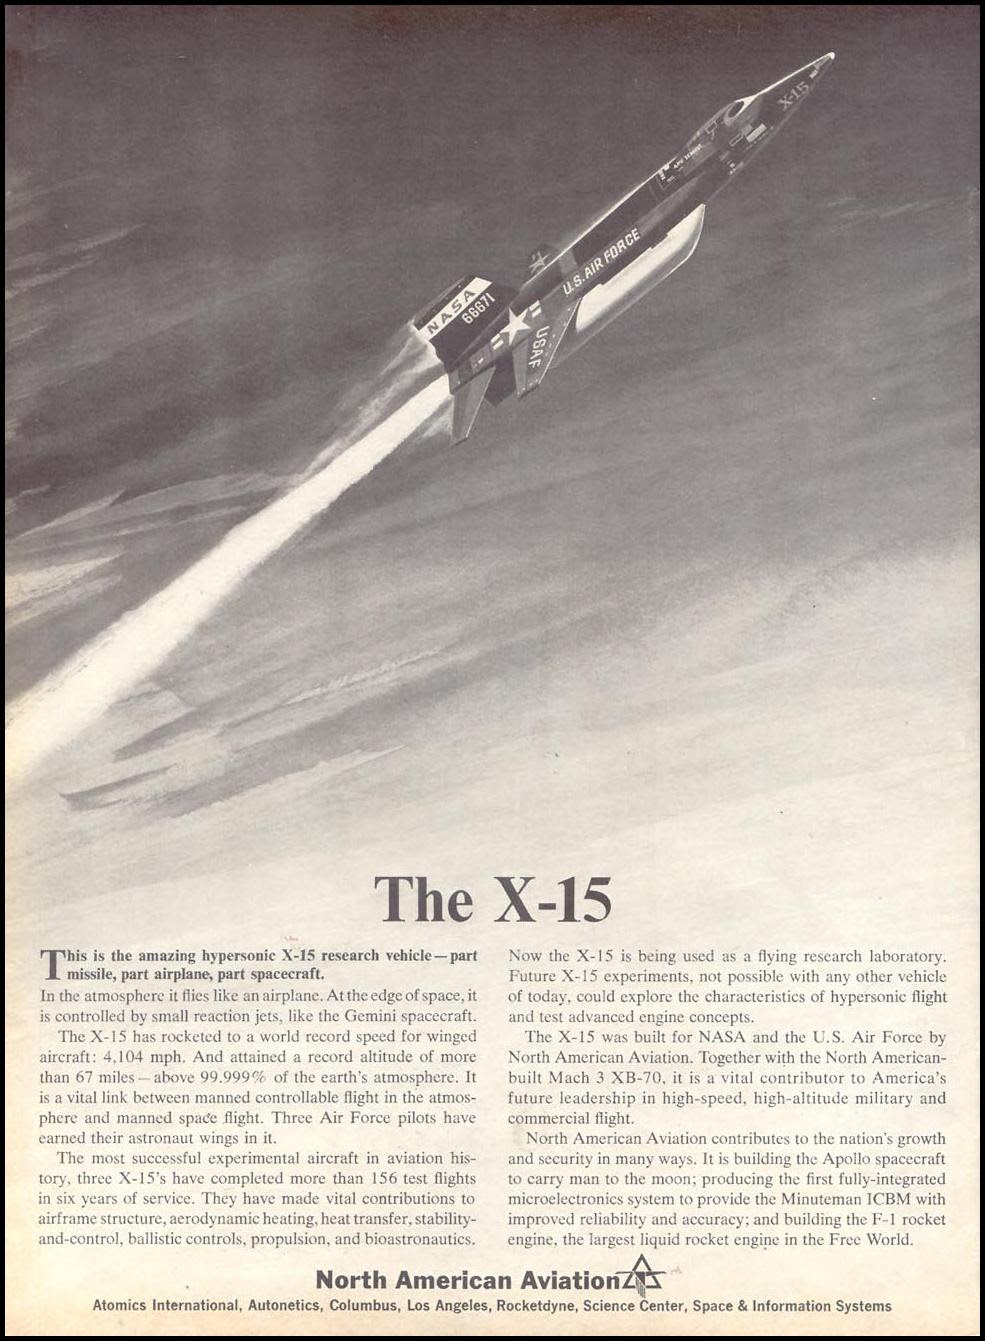 X-15 RESEARCH VEHICLE TIME 03/11/1966 p. 86